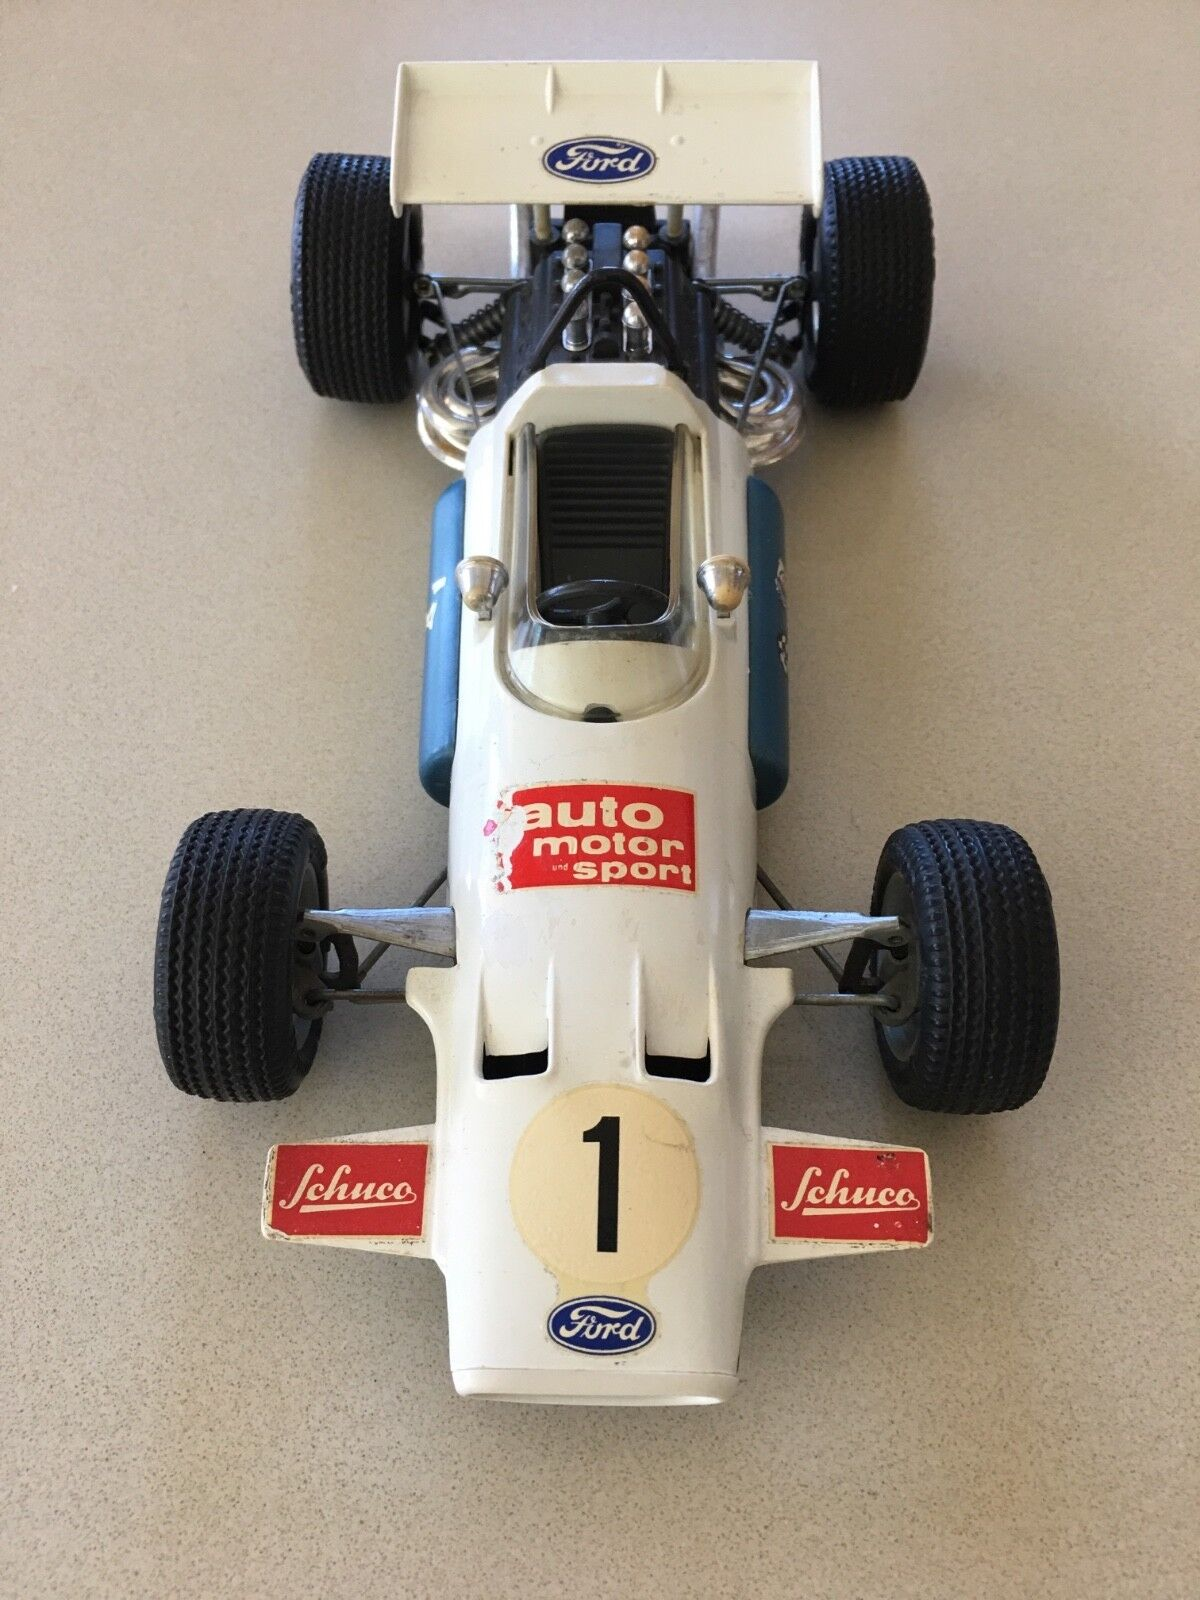 Vintage Scale Model Brabham - Ford Formula 1 by Schuco - BIG PRICE REDUCTION!!!!